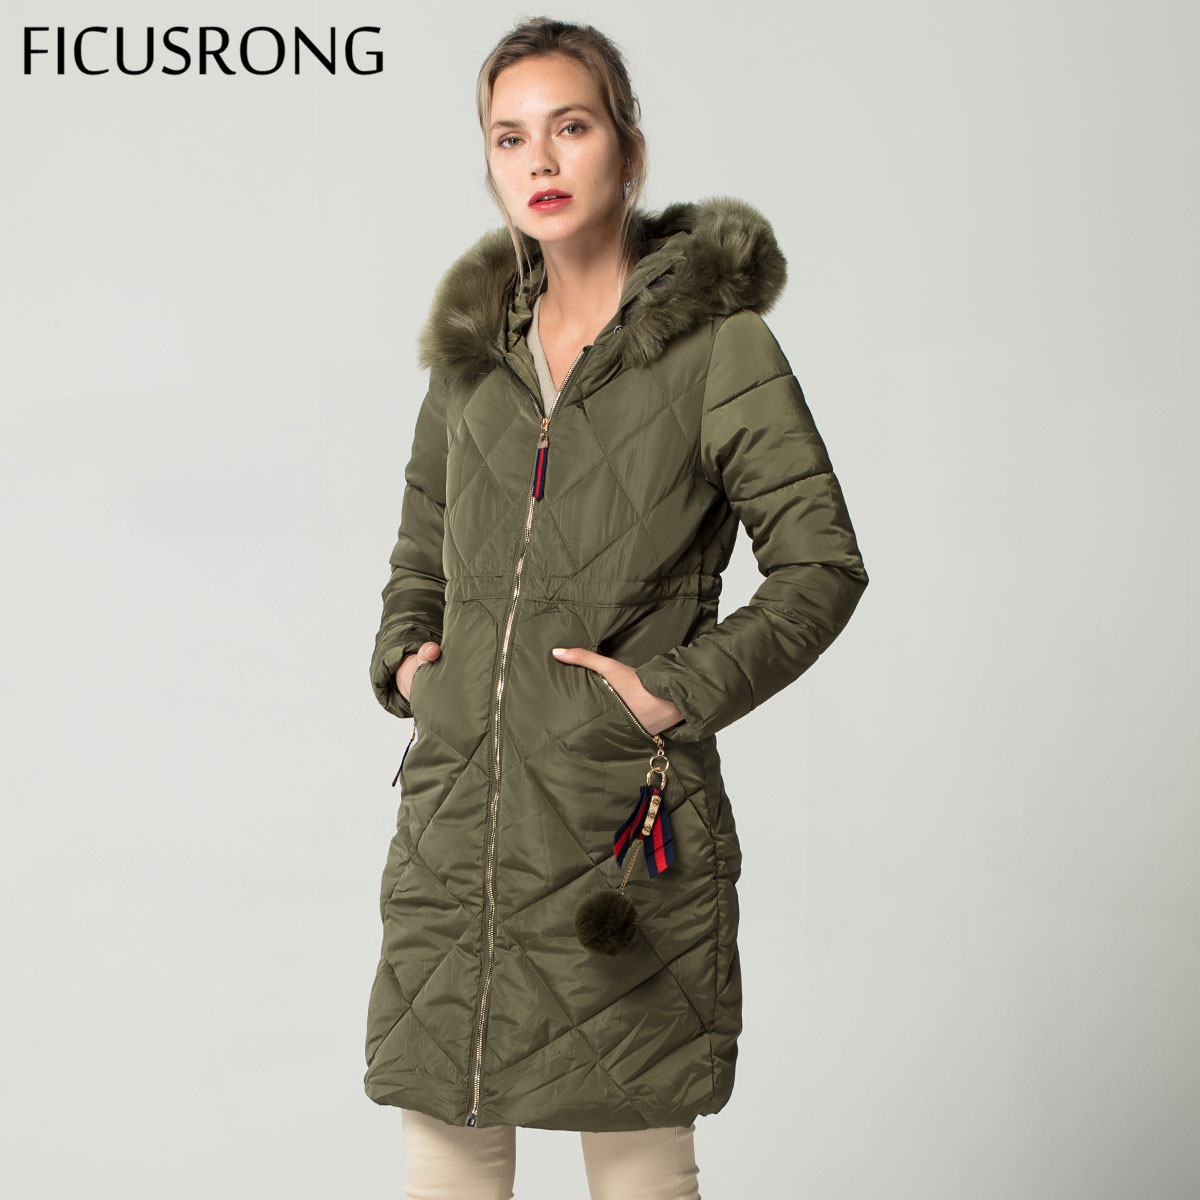 FICUSRONG New Solid Big Fur Winter Coat Thickened   Parkas   For Women Stitching Slim Long Warm Winter Coat Ladies Park Jacket Women